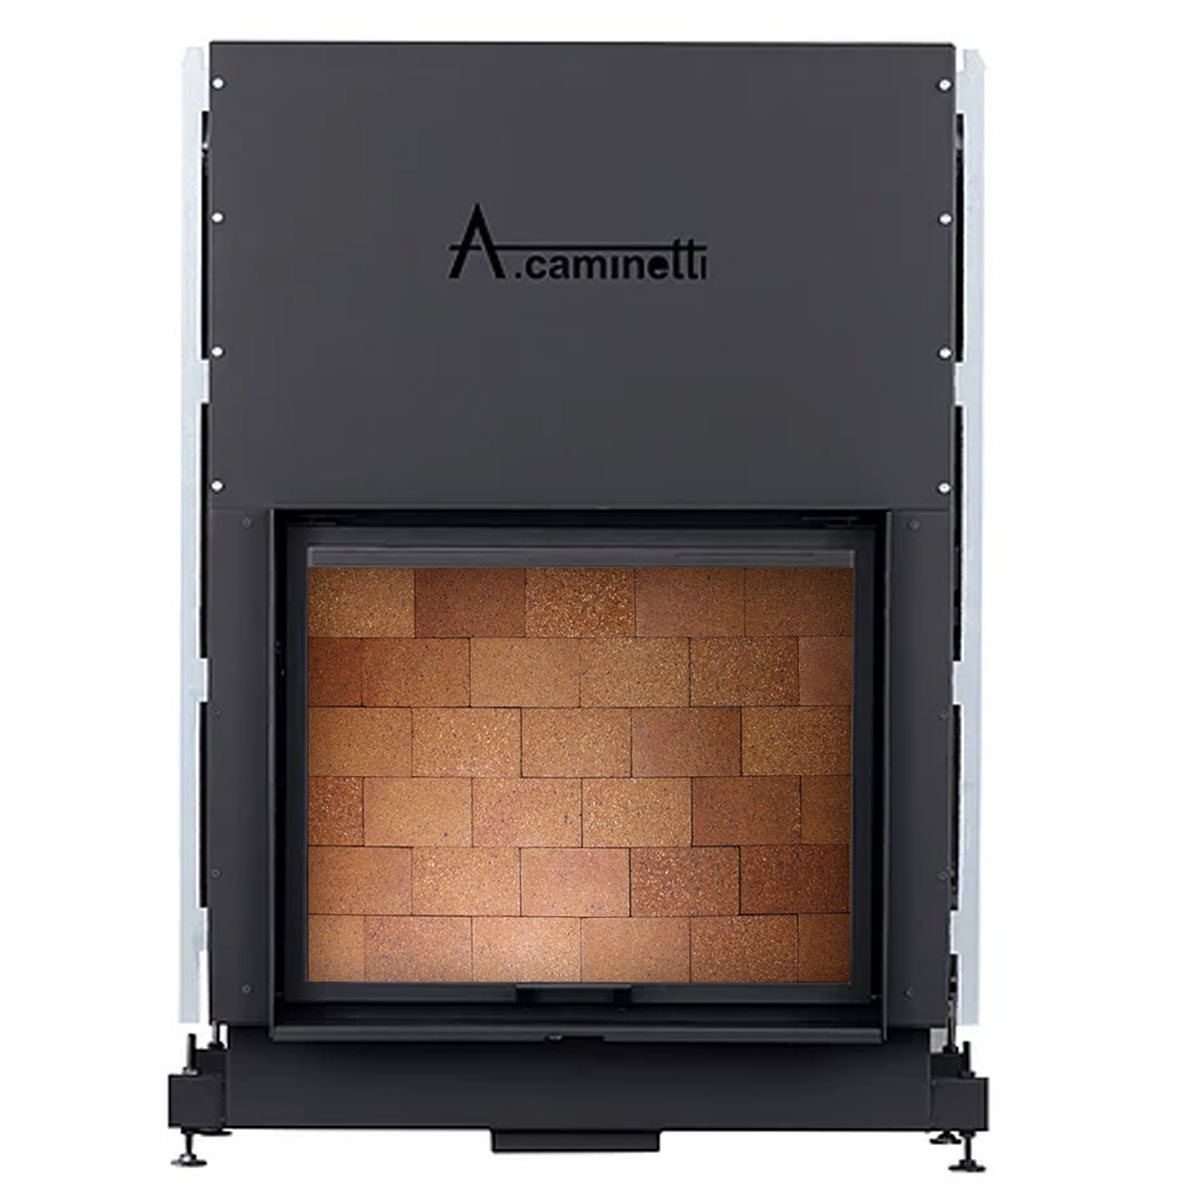 ACAMINETTI ITALY Wood Fireplace Horizon 120 High Rustic